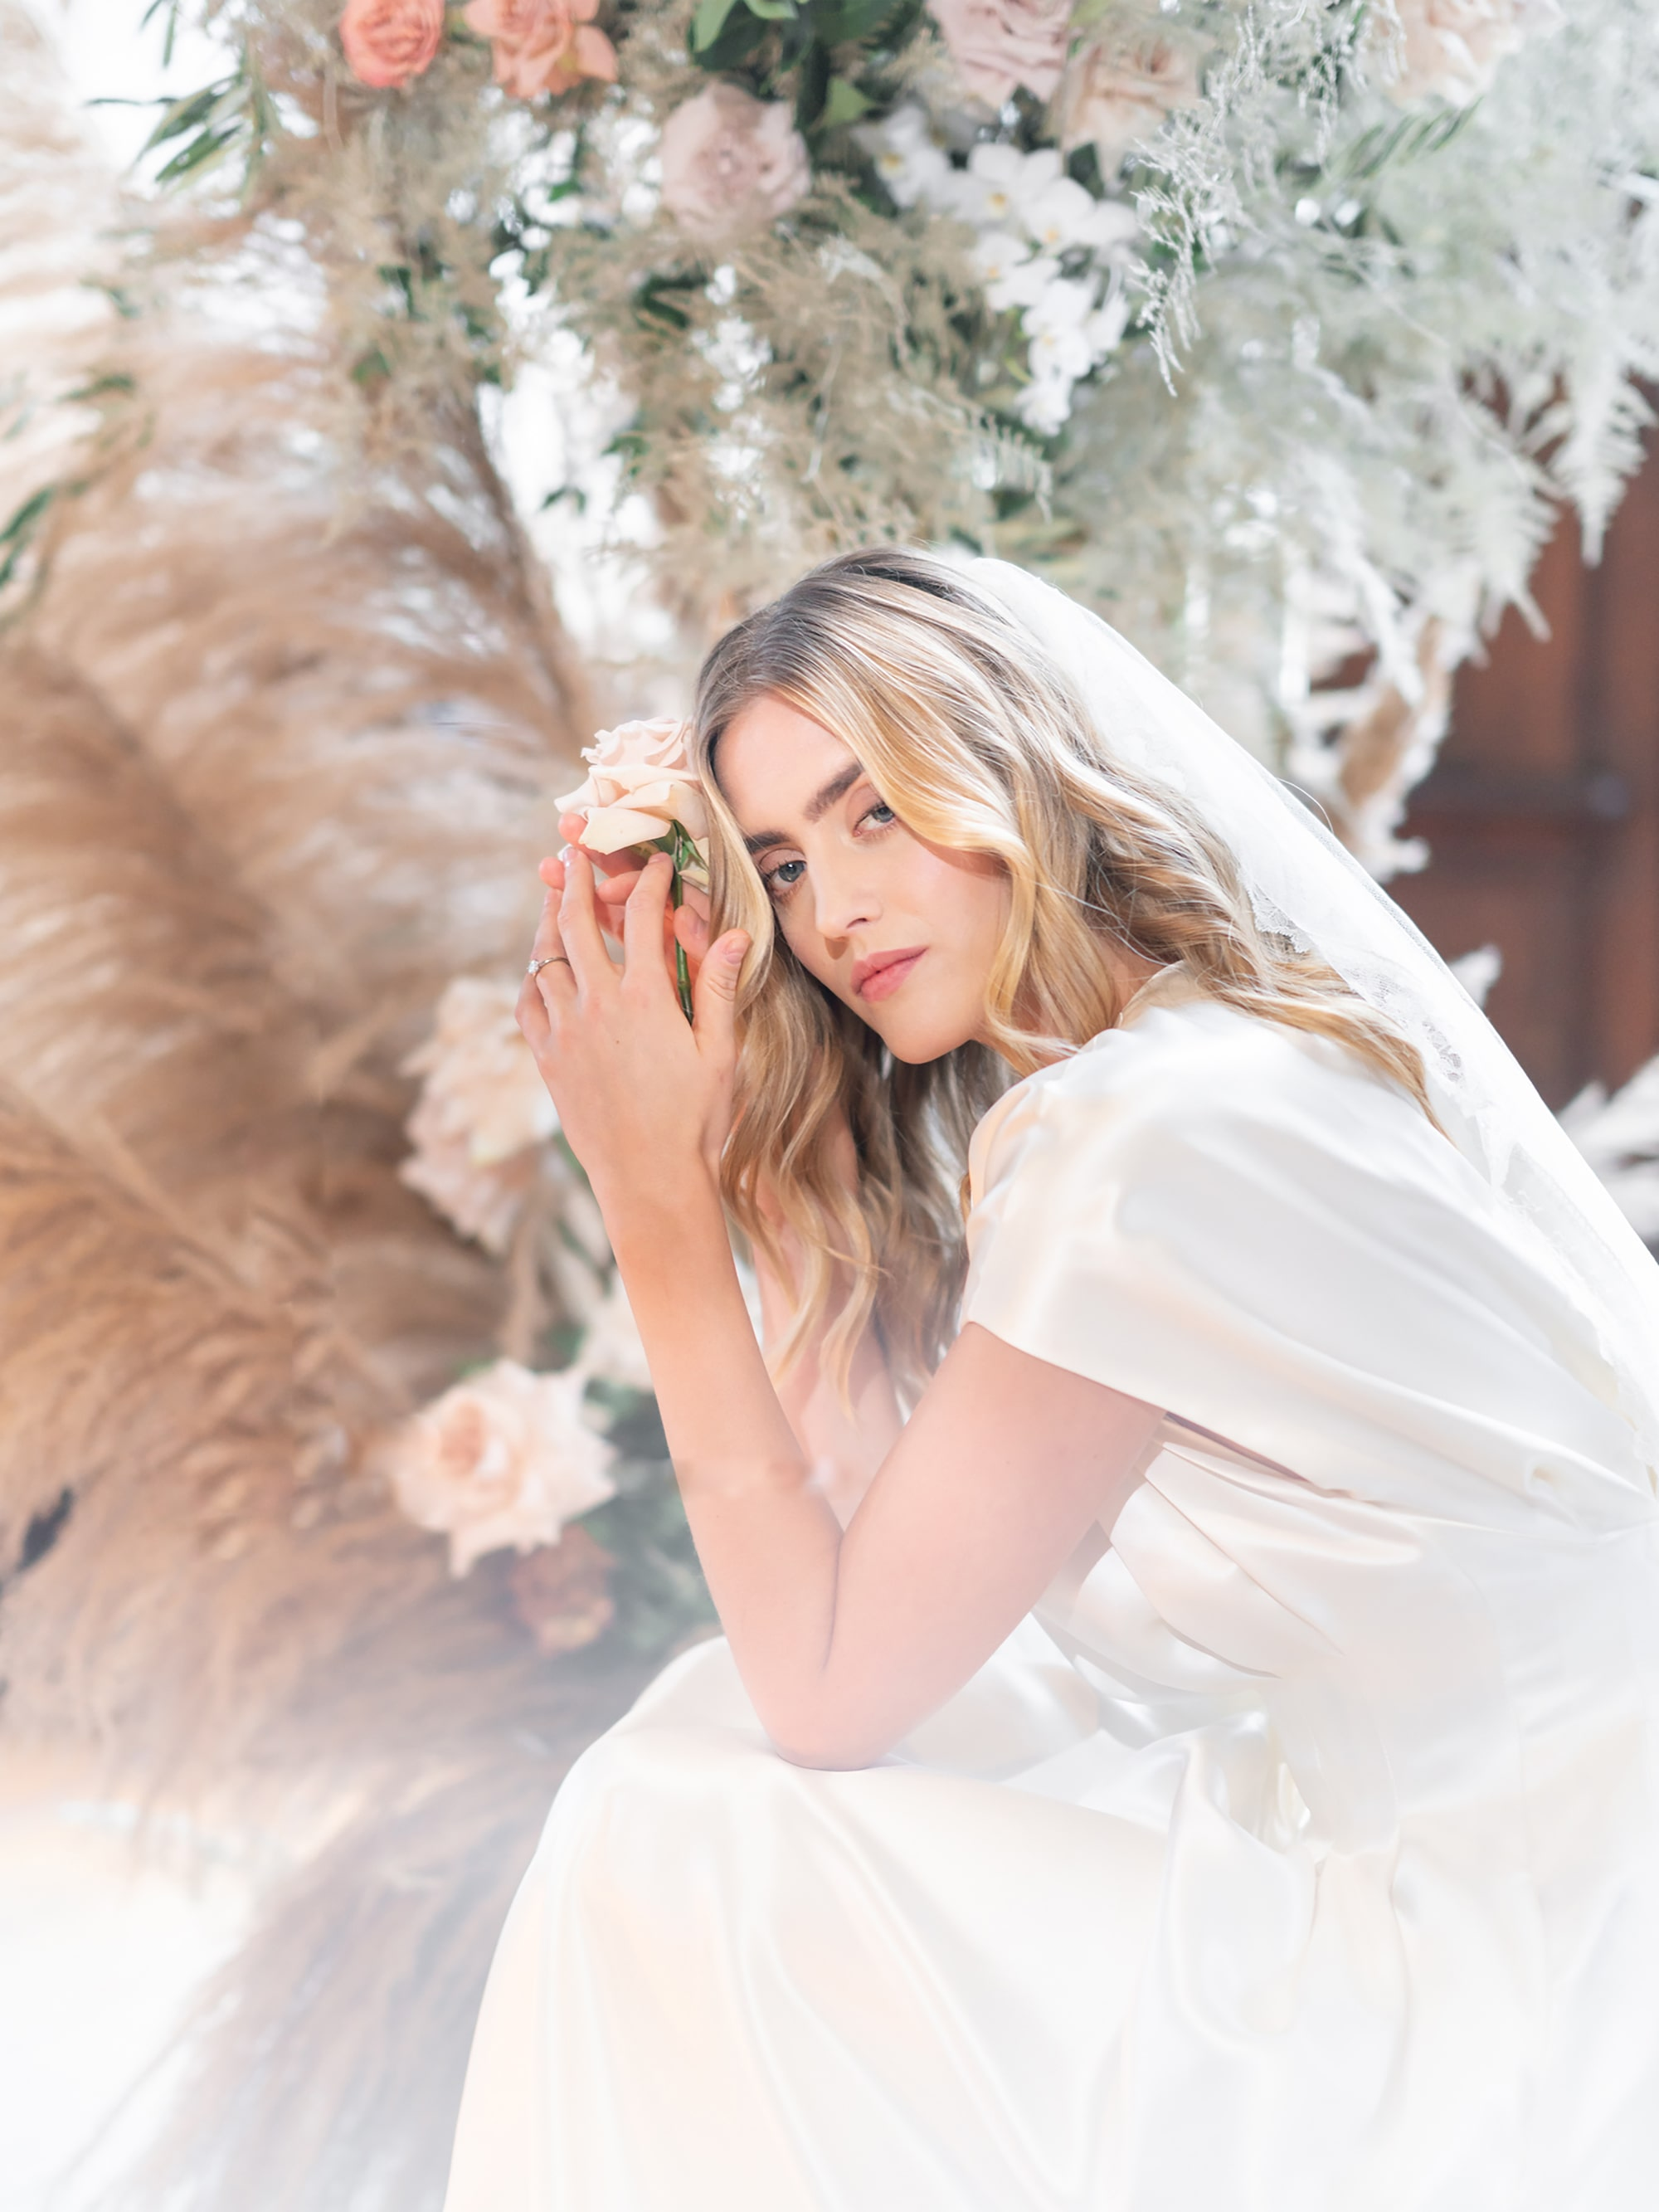 sandra-aberg-sony-alpha-7r3-bride-with-a-veil-is-sitting-in-front-of-a-feather-bouquet-with-a-rose-in-her-hands